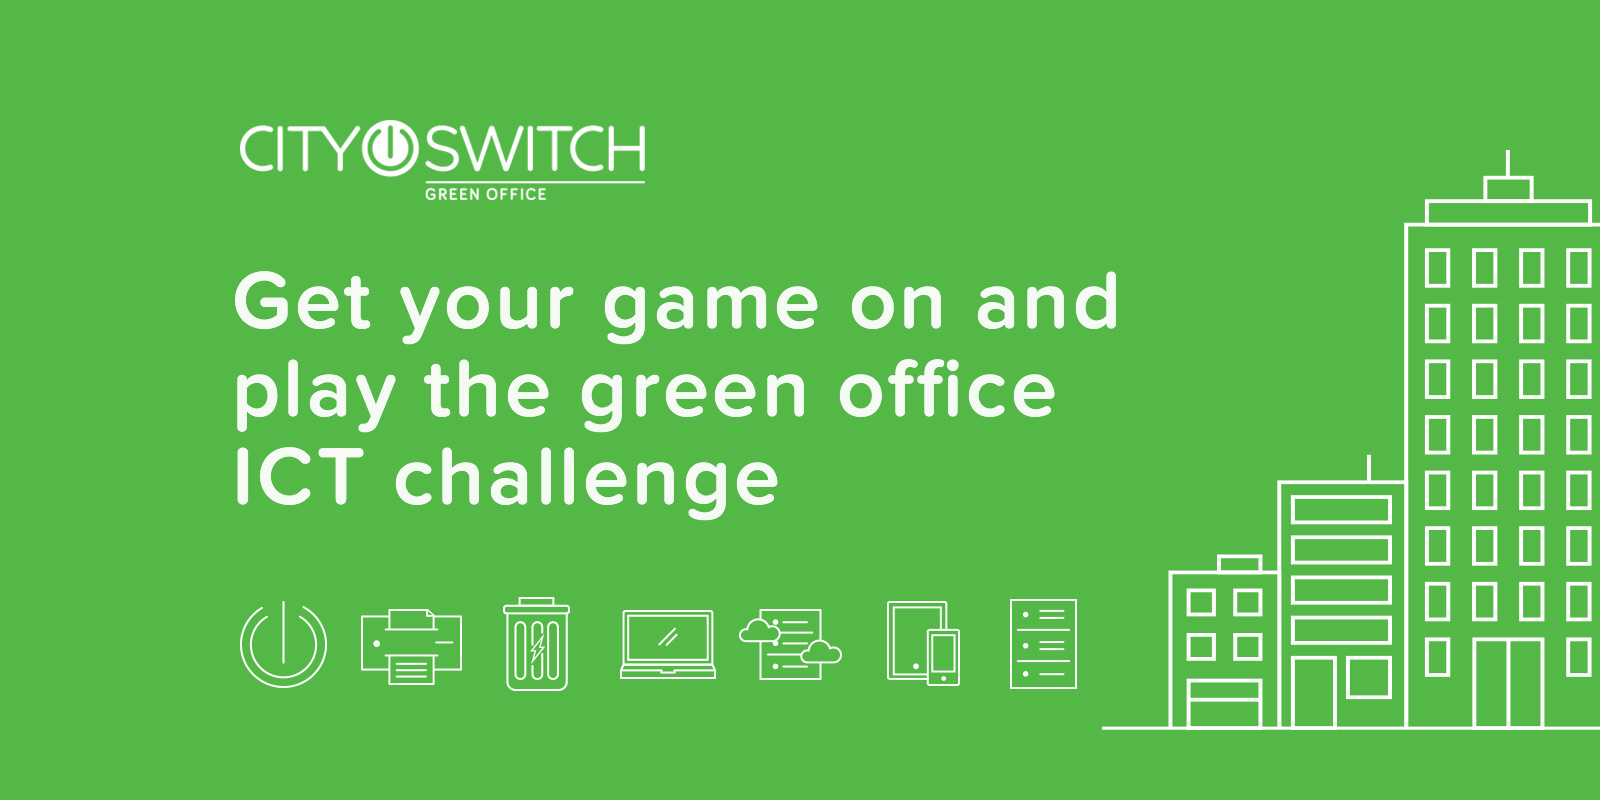 Play the green ICT challenge